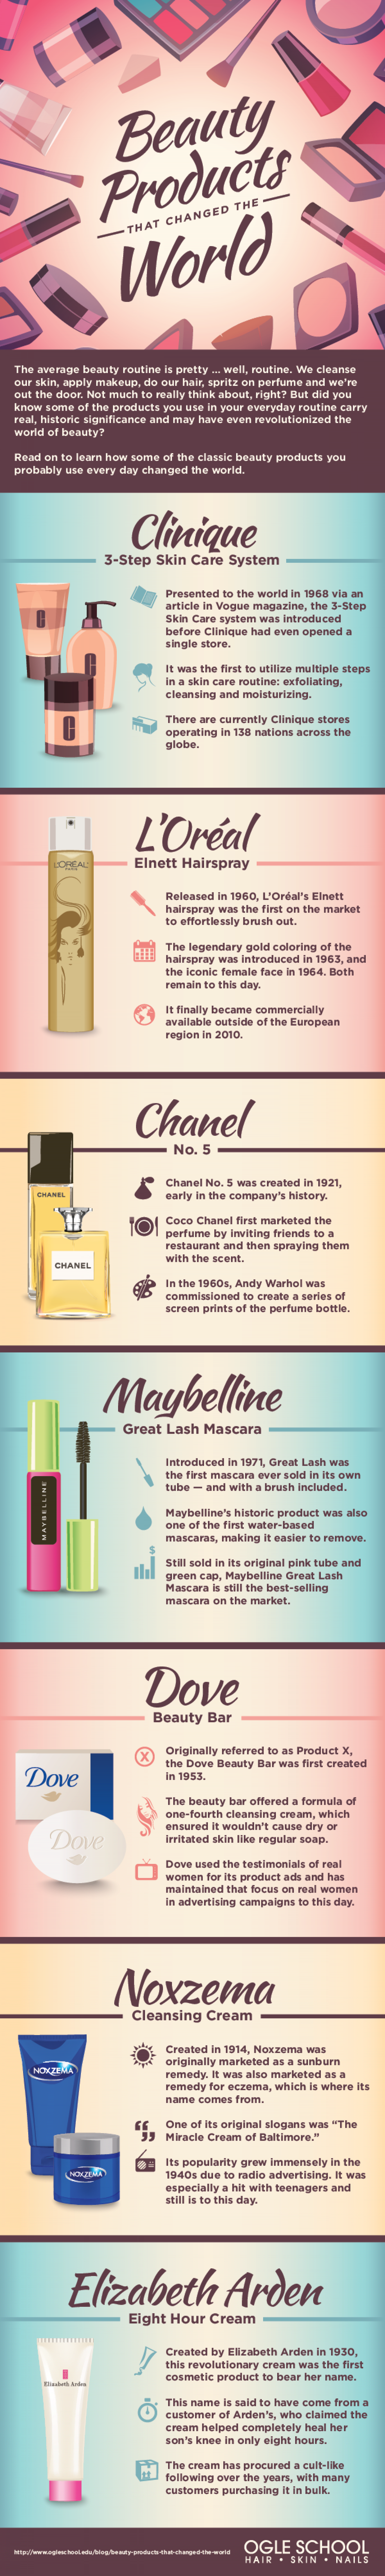 How Beauty Products Changed the World?  Infographic